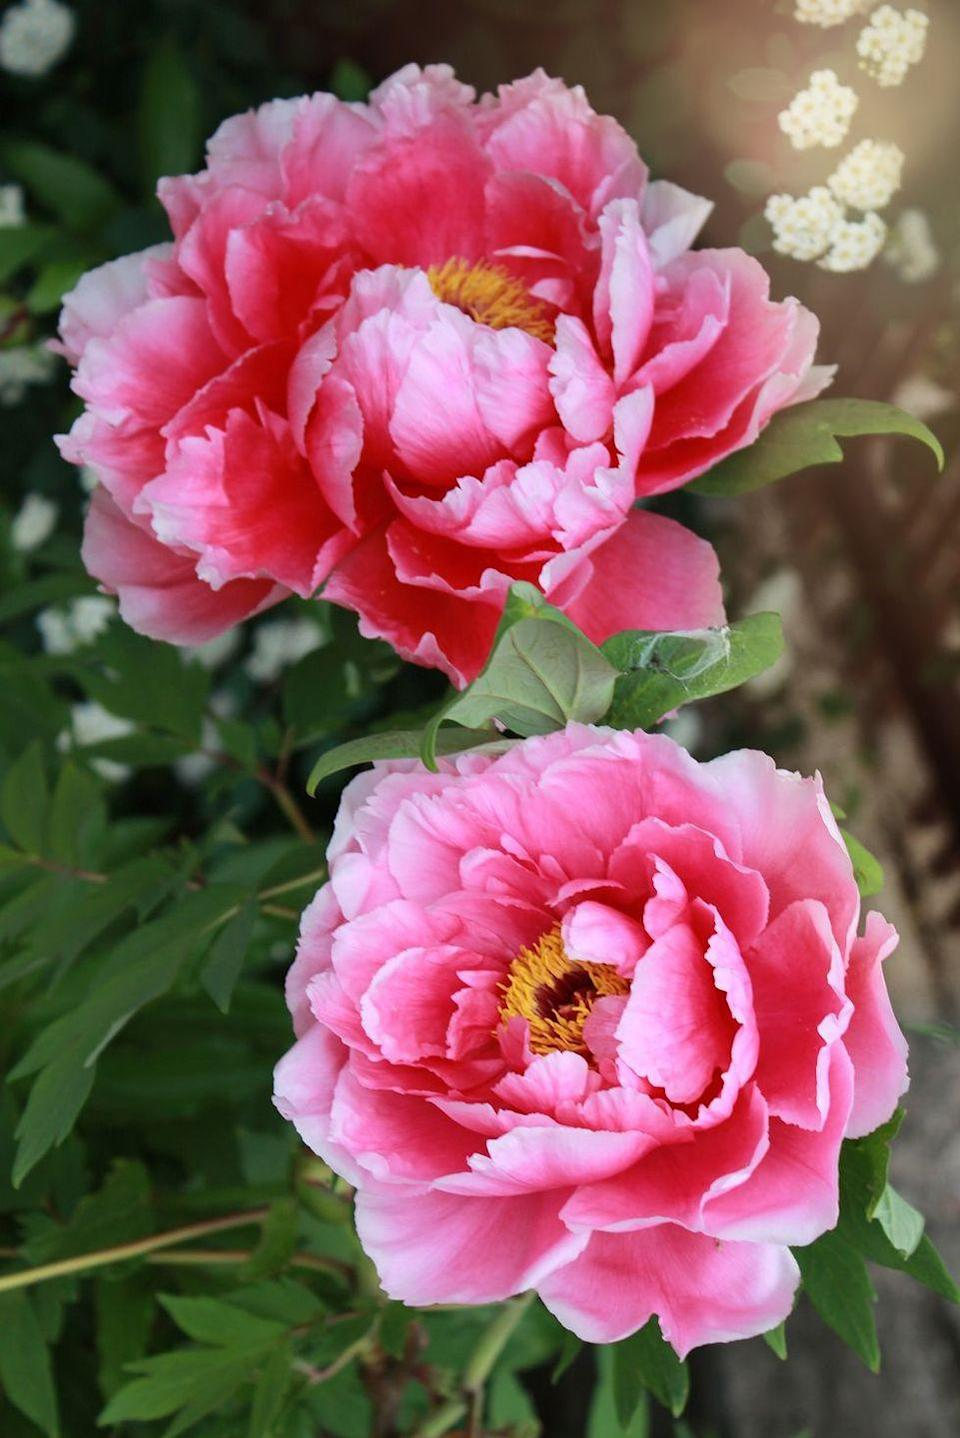 "<p>Oddly enough, these sweet, many-petaled blooms represented ""anger"" to Victorians. Today, however, peonies are linked to romance, marriage, and even bashfulness.</p><p> <strong>RELATED: </strong><a href=""https://www.goodhousekeeping.com/home/gardening/a20705642/how-to-grow-your-own-gorgeous-peonies/"" rel=""nofollow noopener"" target=""_blank"" data-ylk=""slk:How to Grow Your Own Gorgeous Peonies"" class=""link rapid-noclick-resp"">How to Grow Your Own Gorgeous Peonies</a></p>"